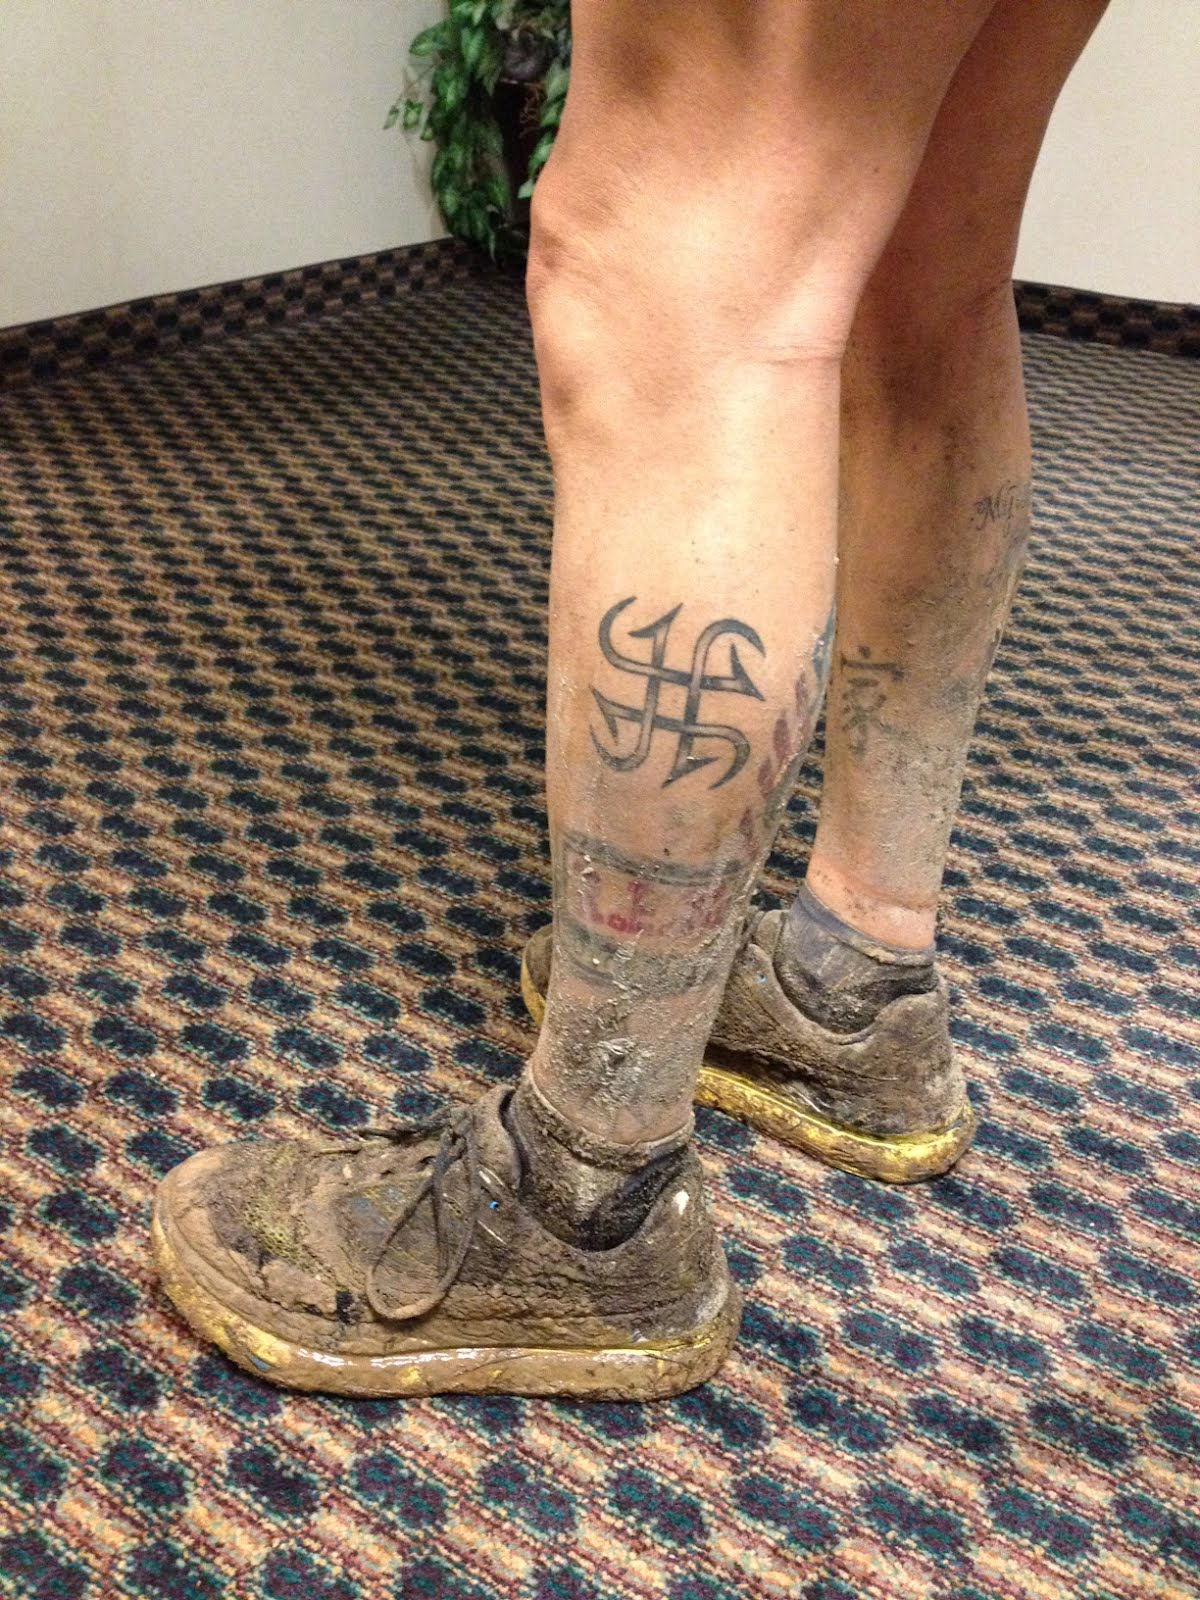 Download image ultra running tattoos pc android iphone and ipad